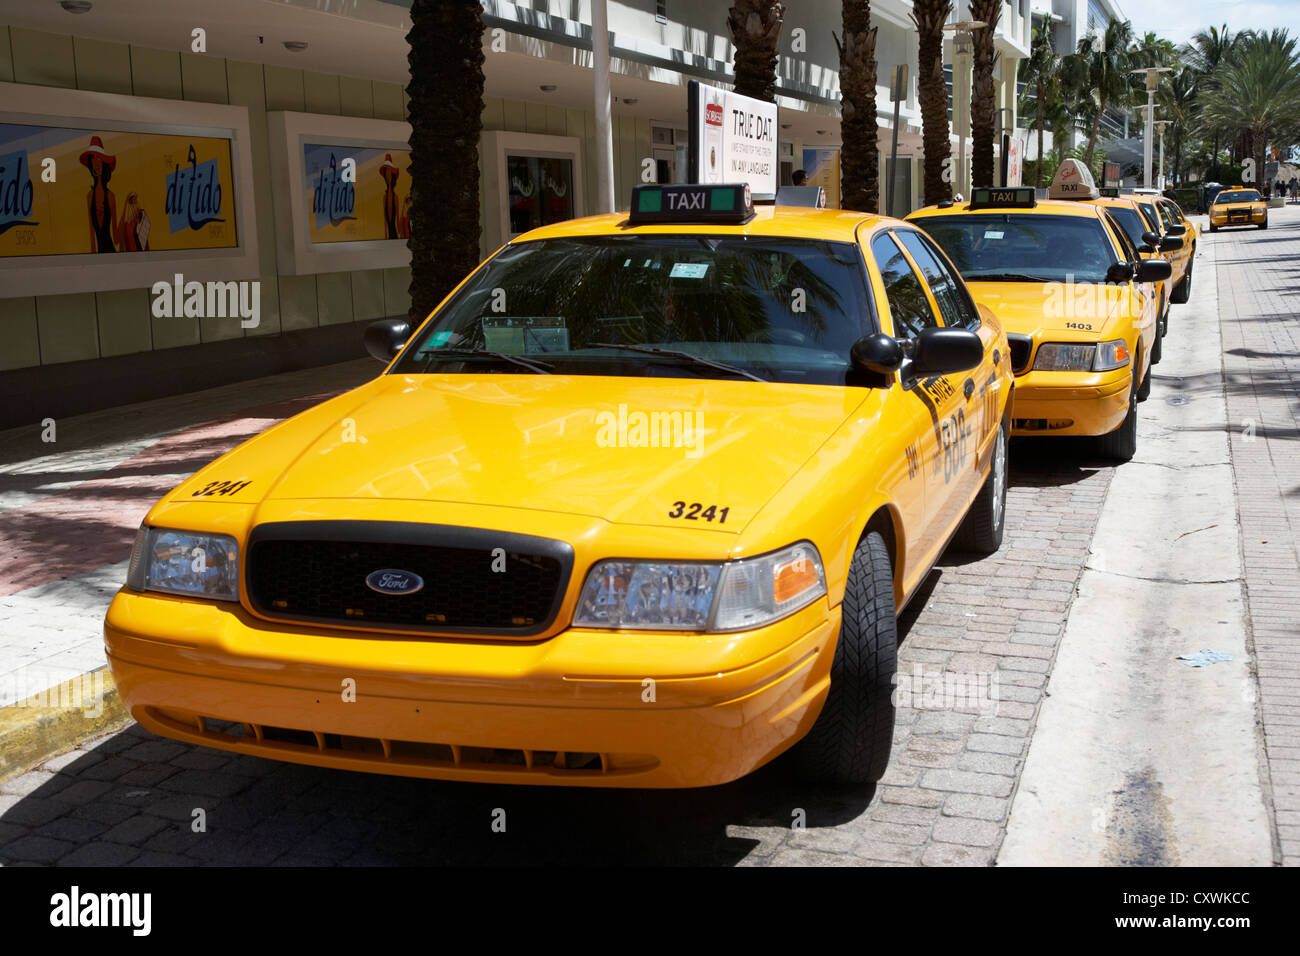 Cab Fare From Miami Airport To South Beach